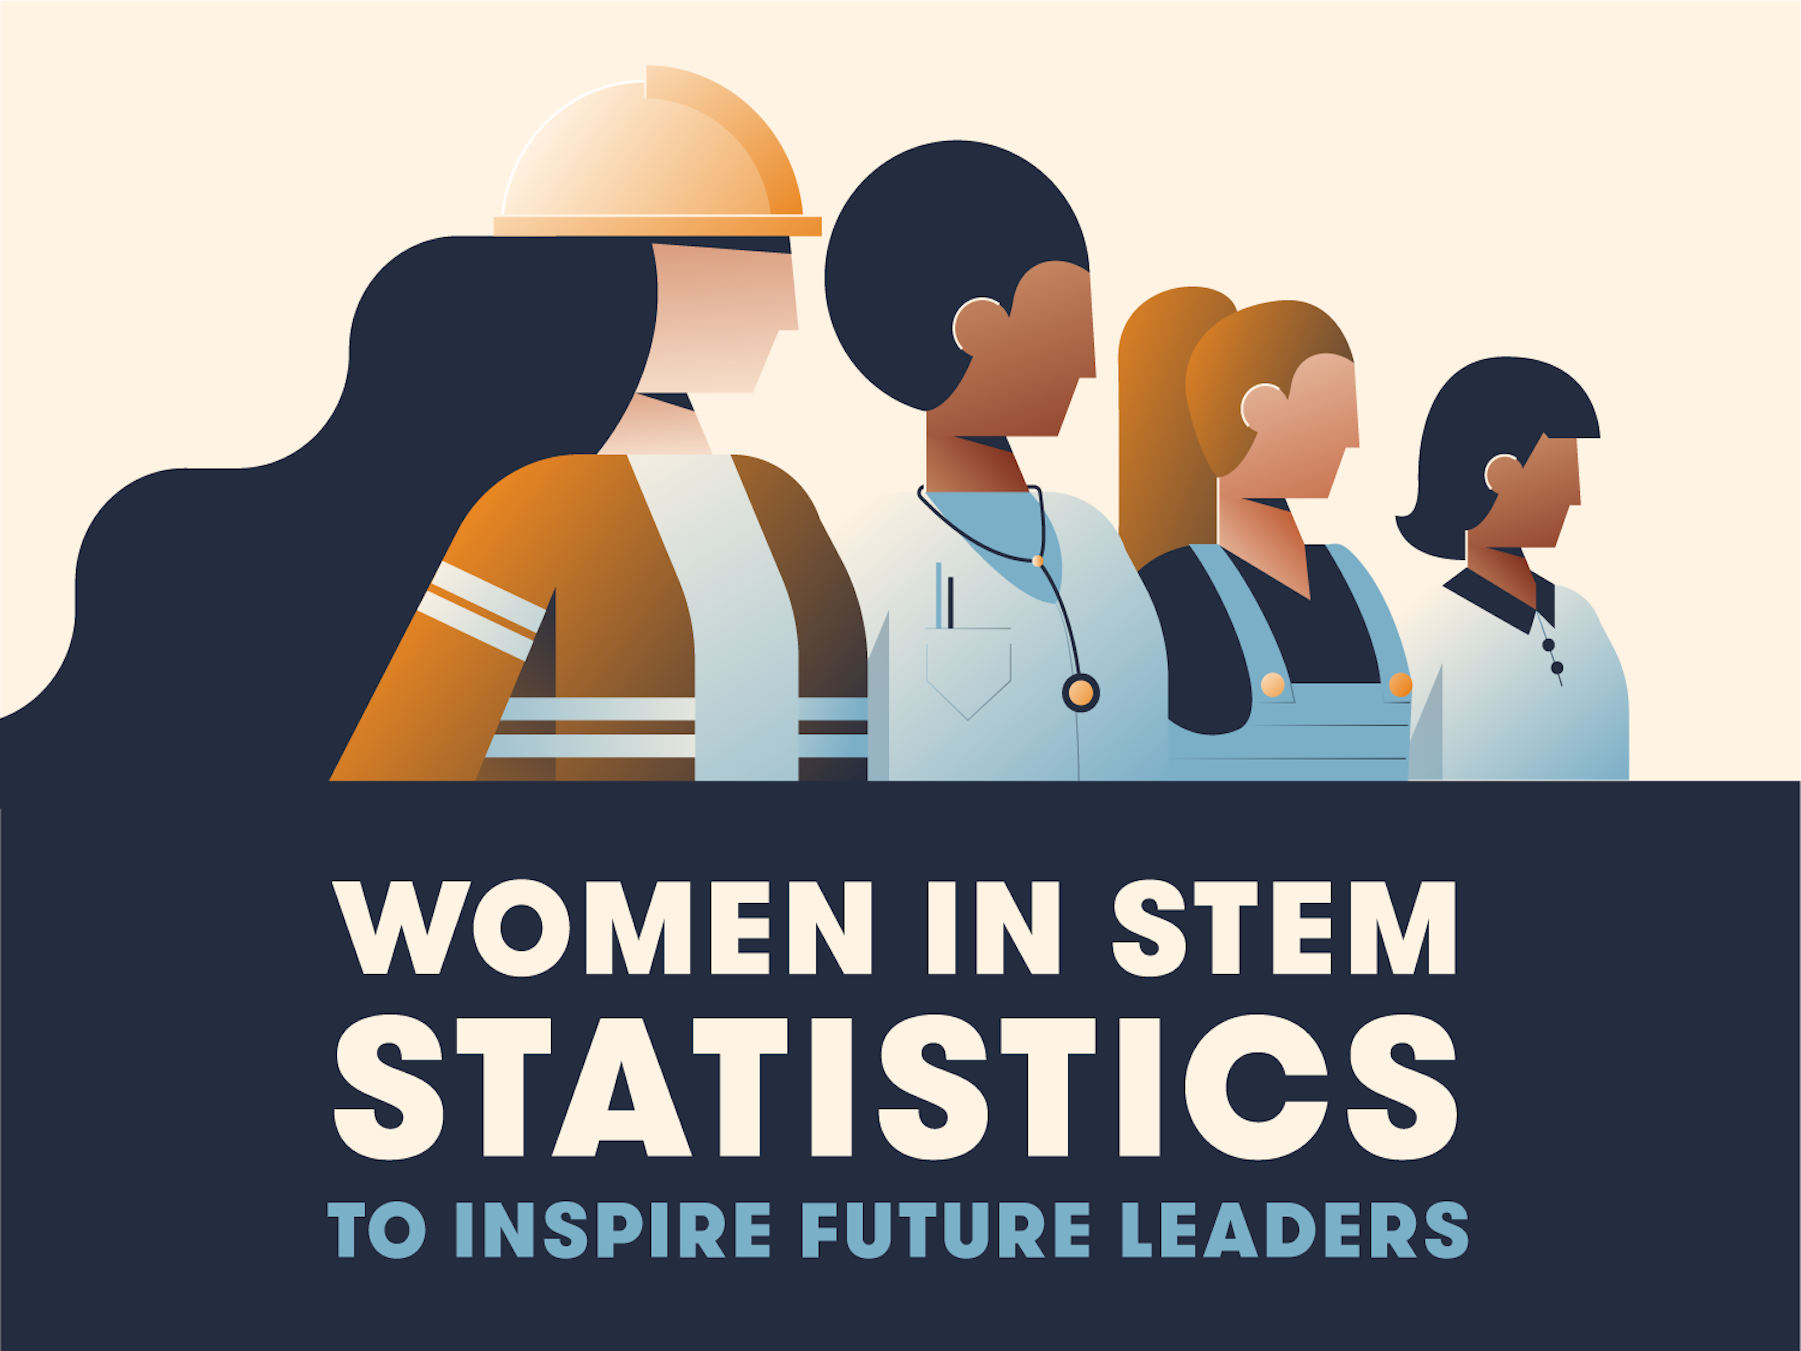 Women in STEM Statistics to Inspire Future Leaders